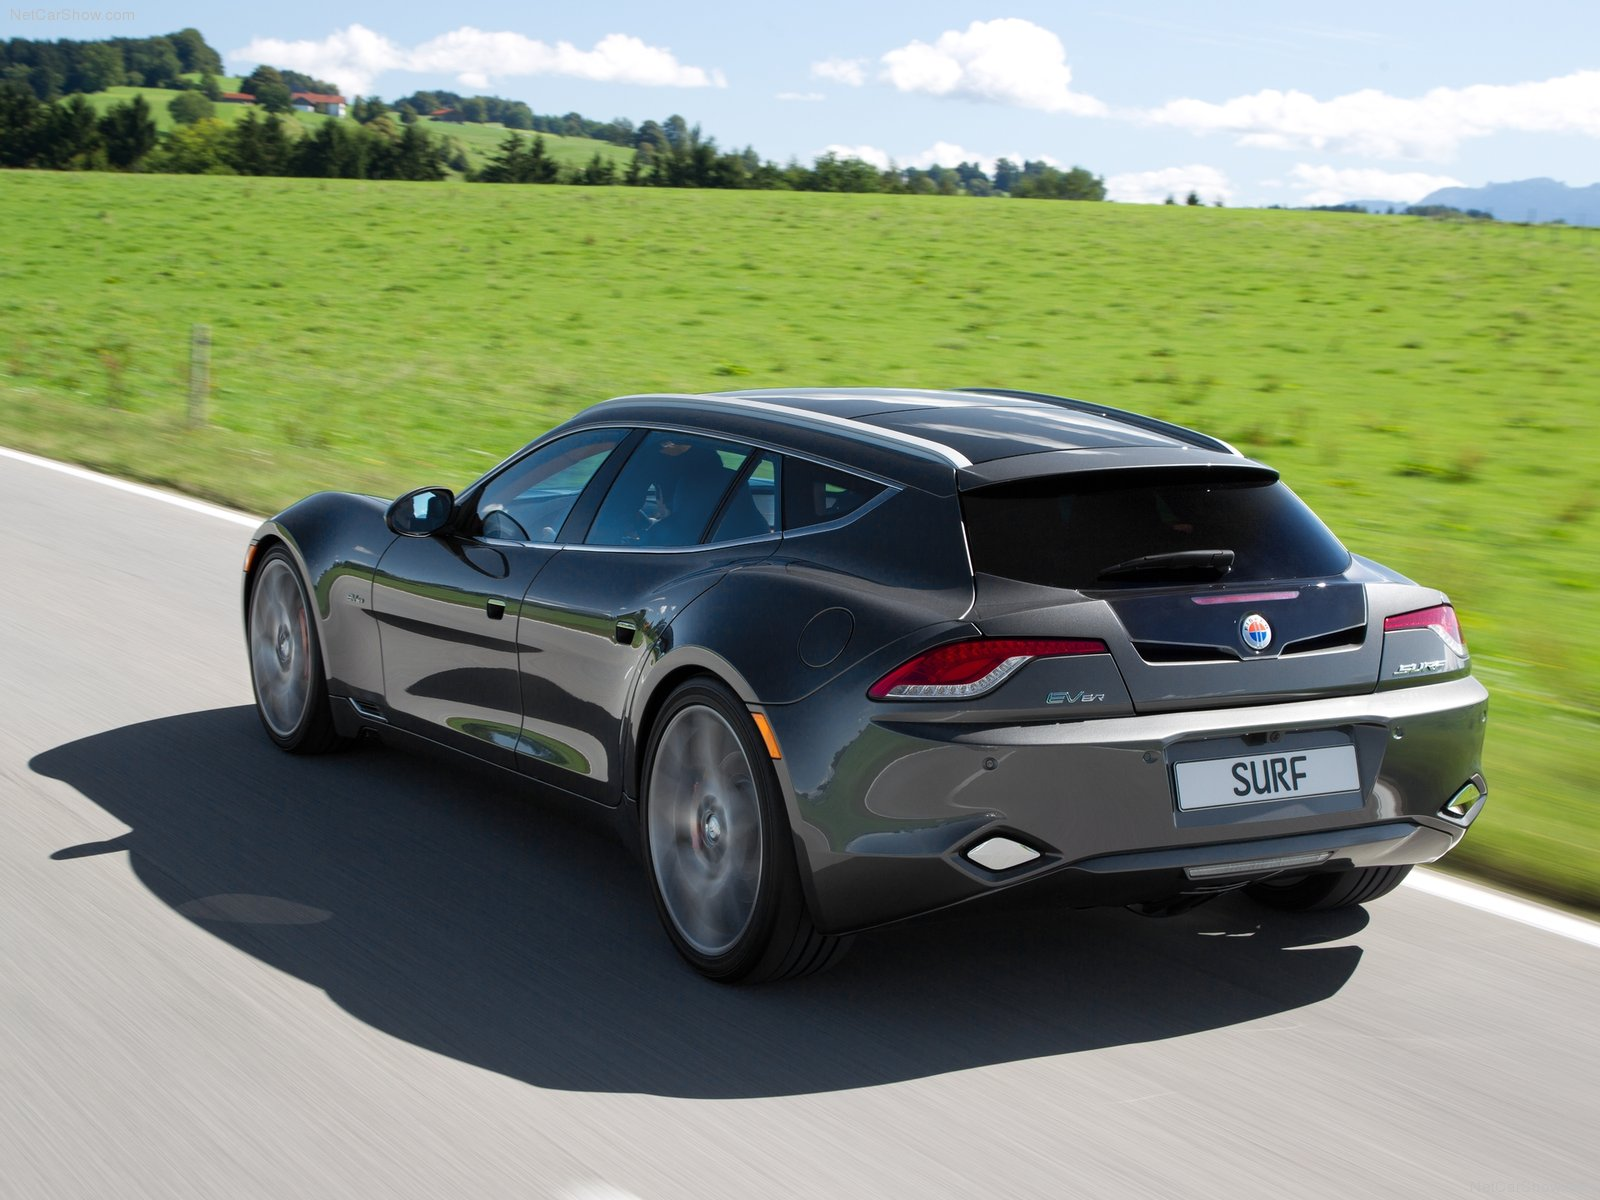 Fisker Surf photo 84383